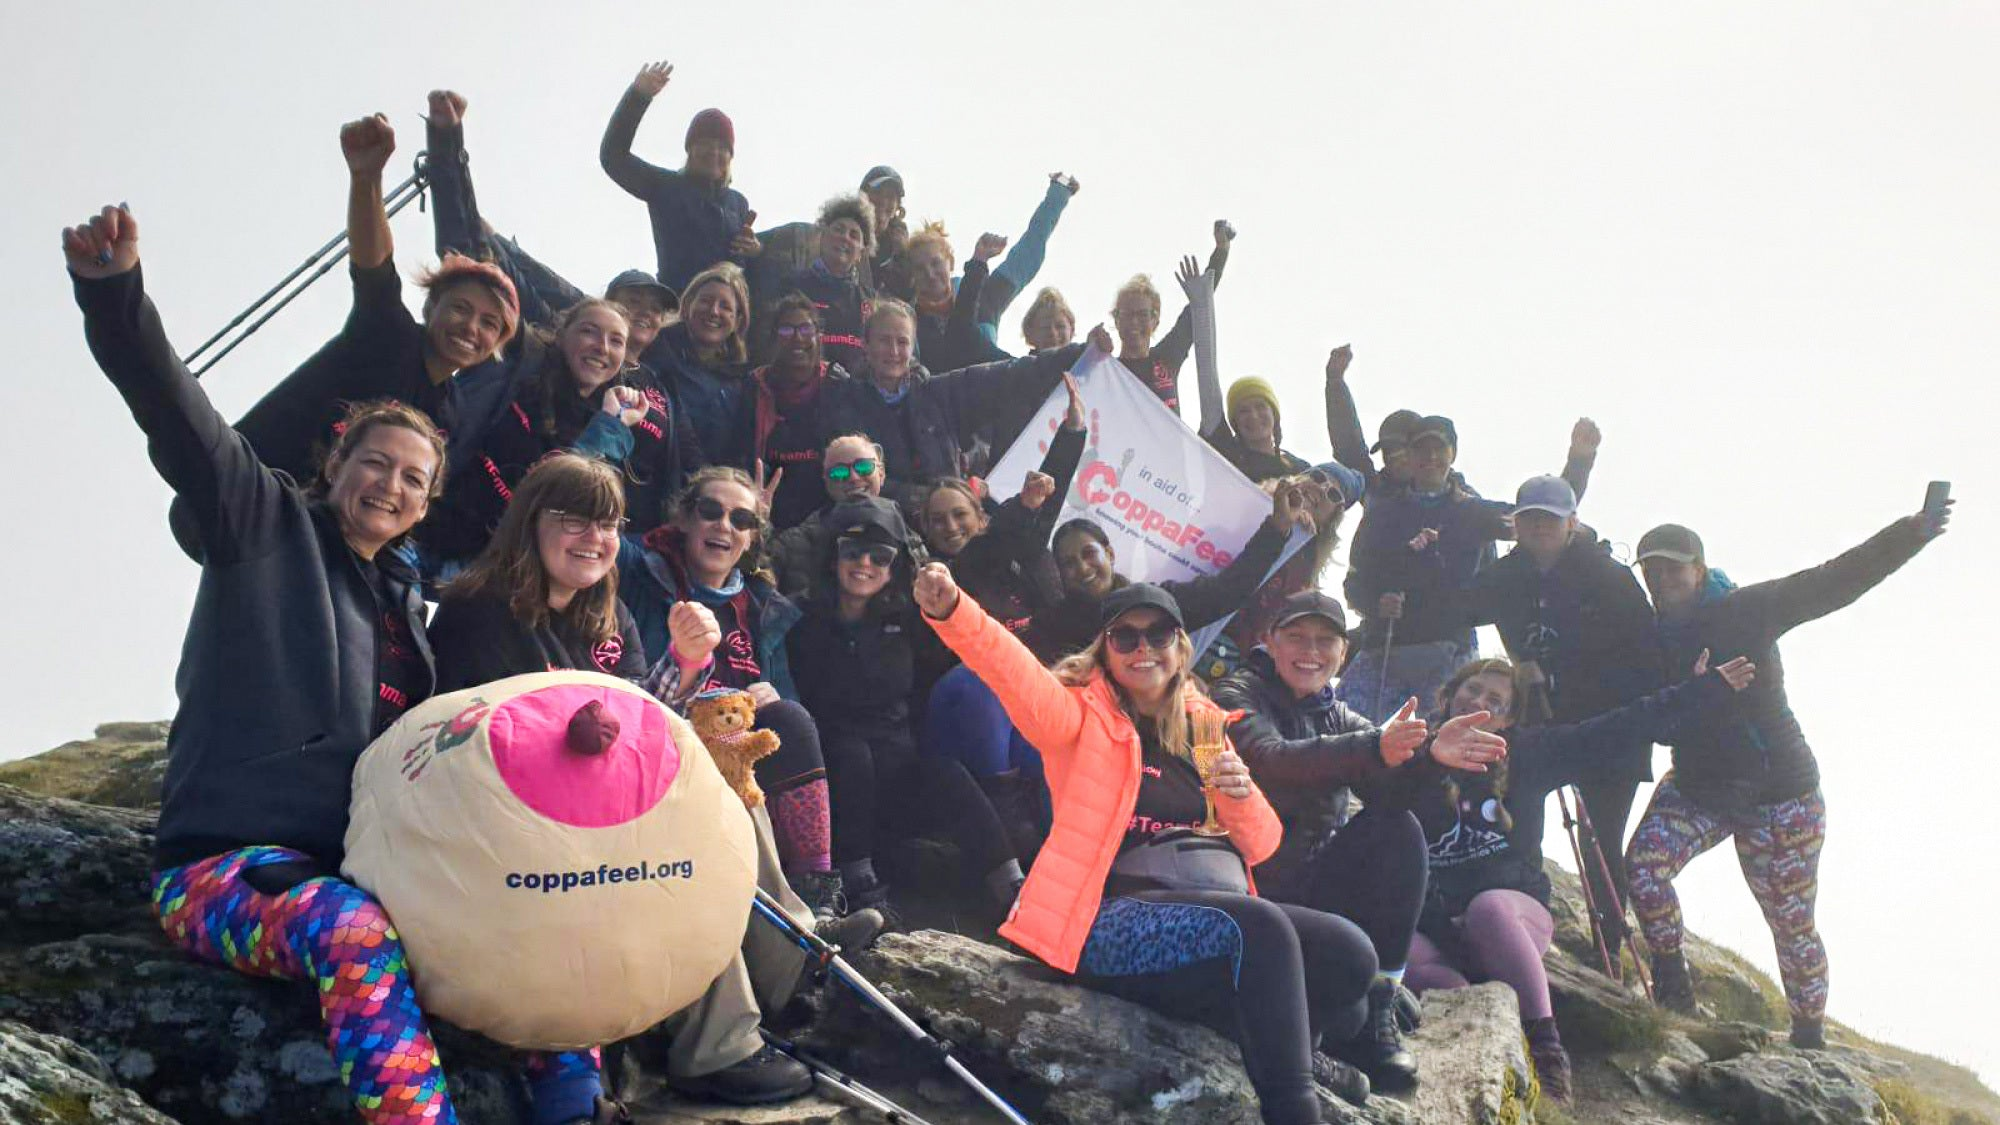 Photo showing a group of hikers holding their arms aloft while sat on a mountain top.